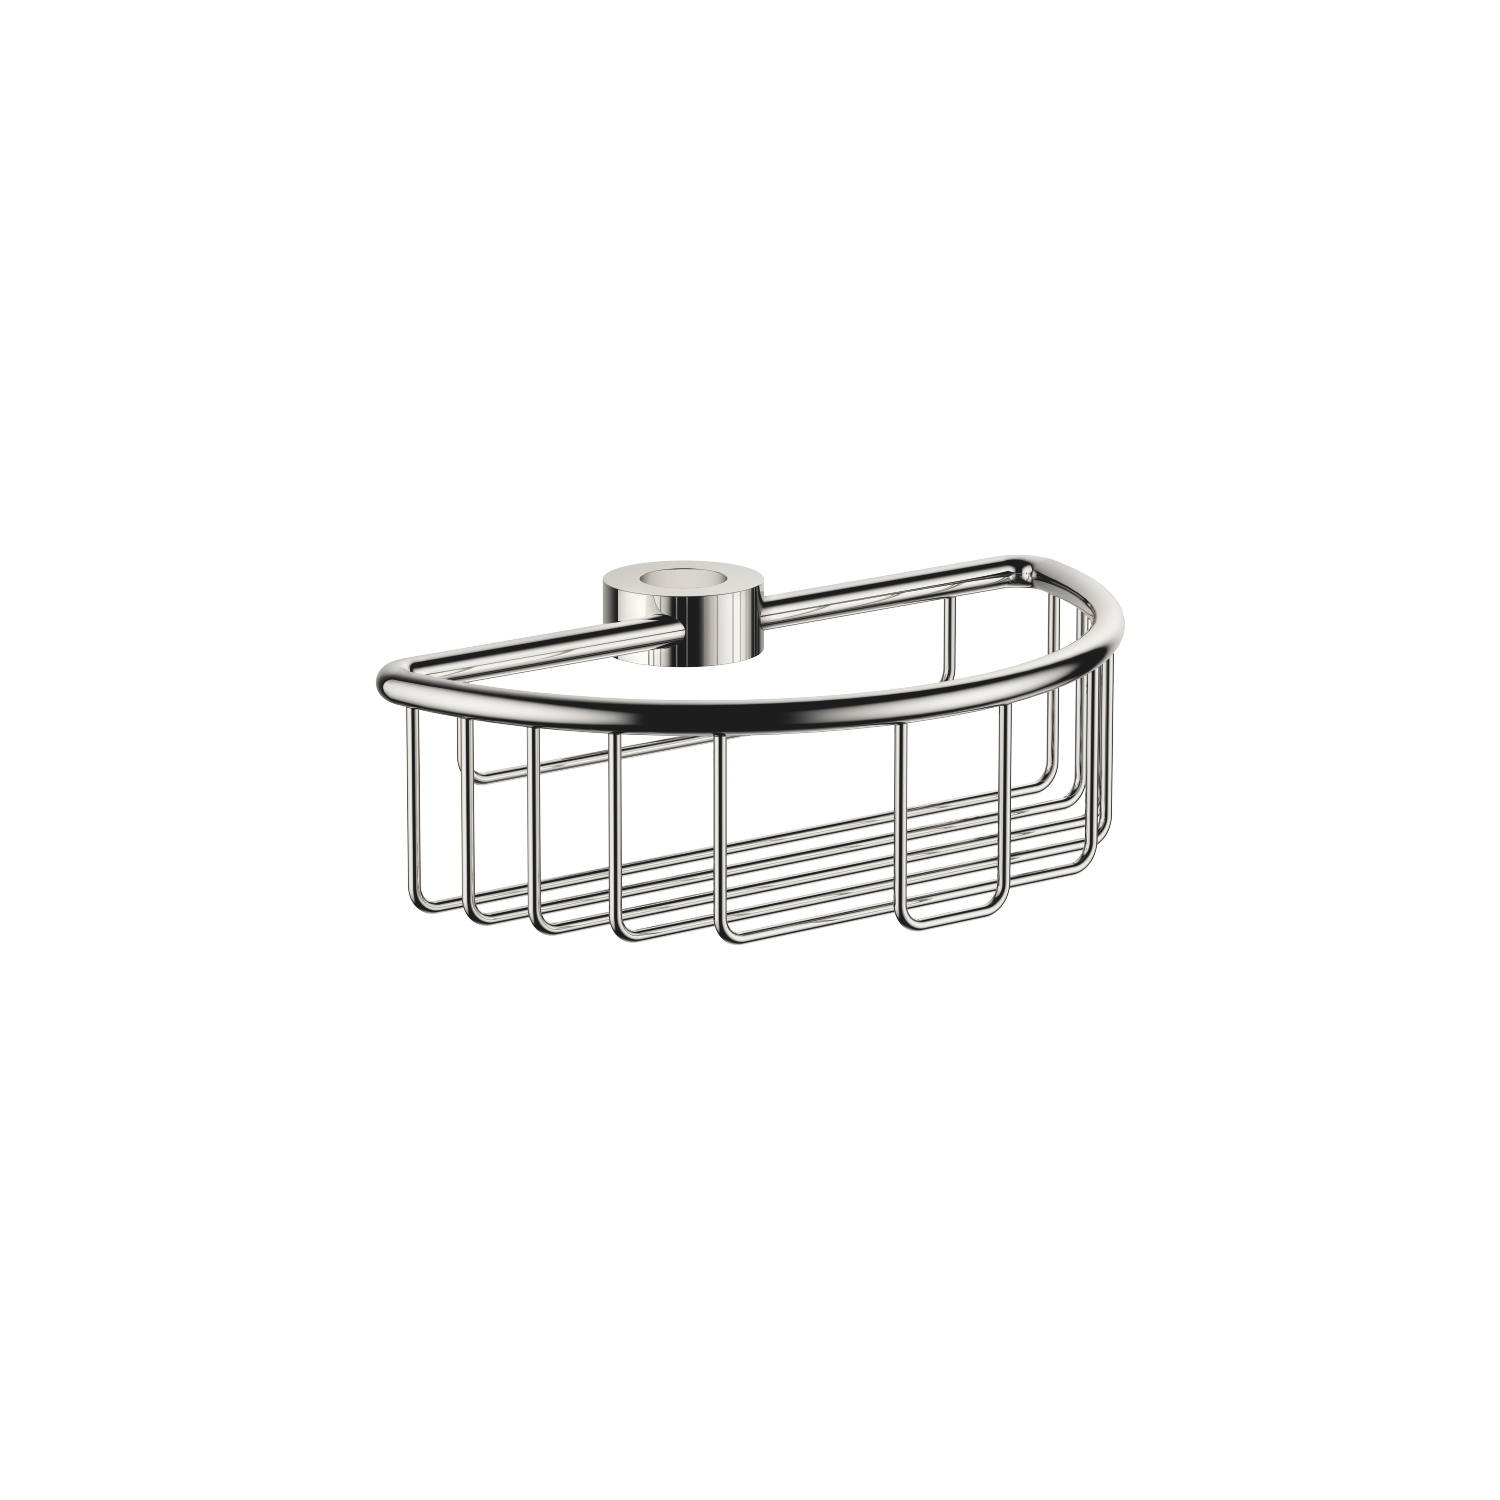 Shower basket for subsequent mounting on riser - platinum